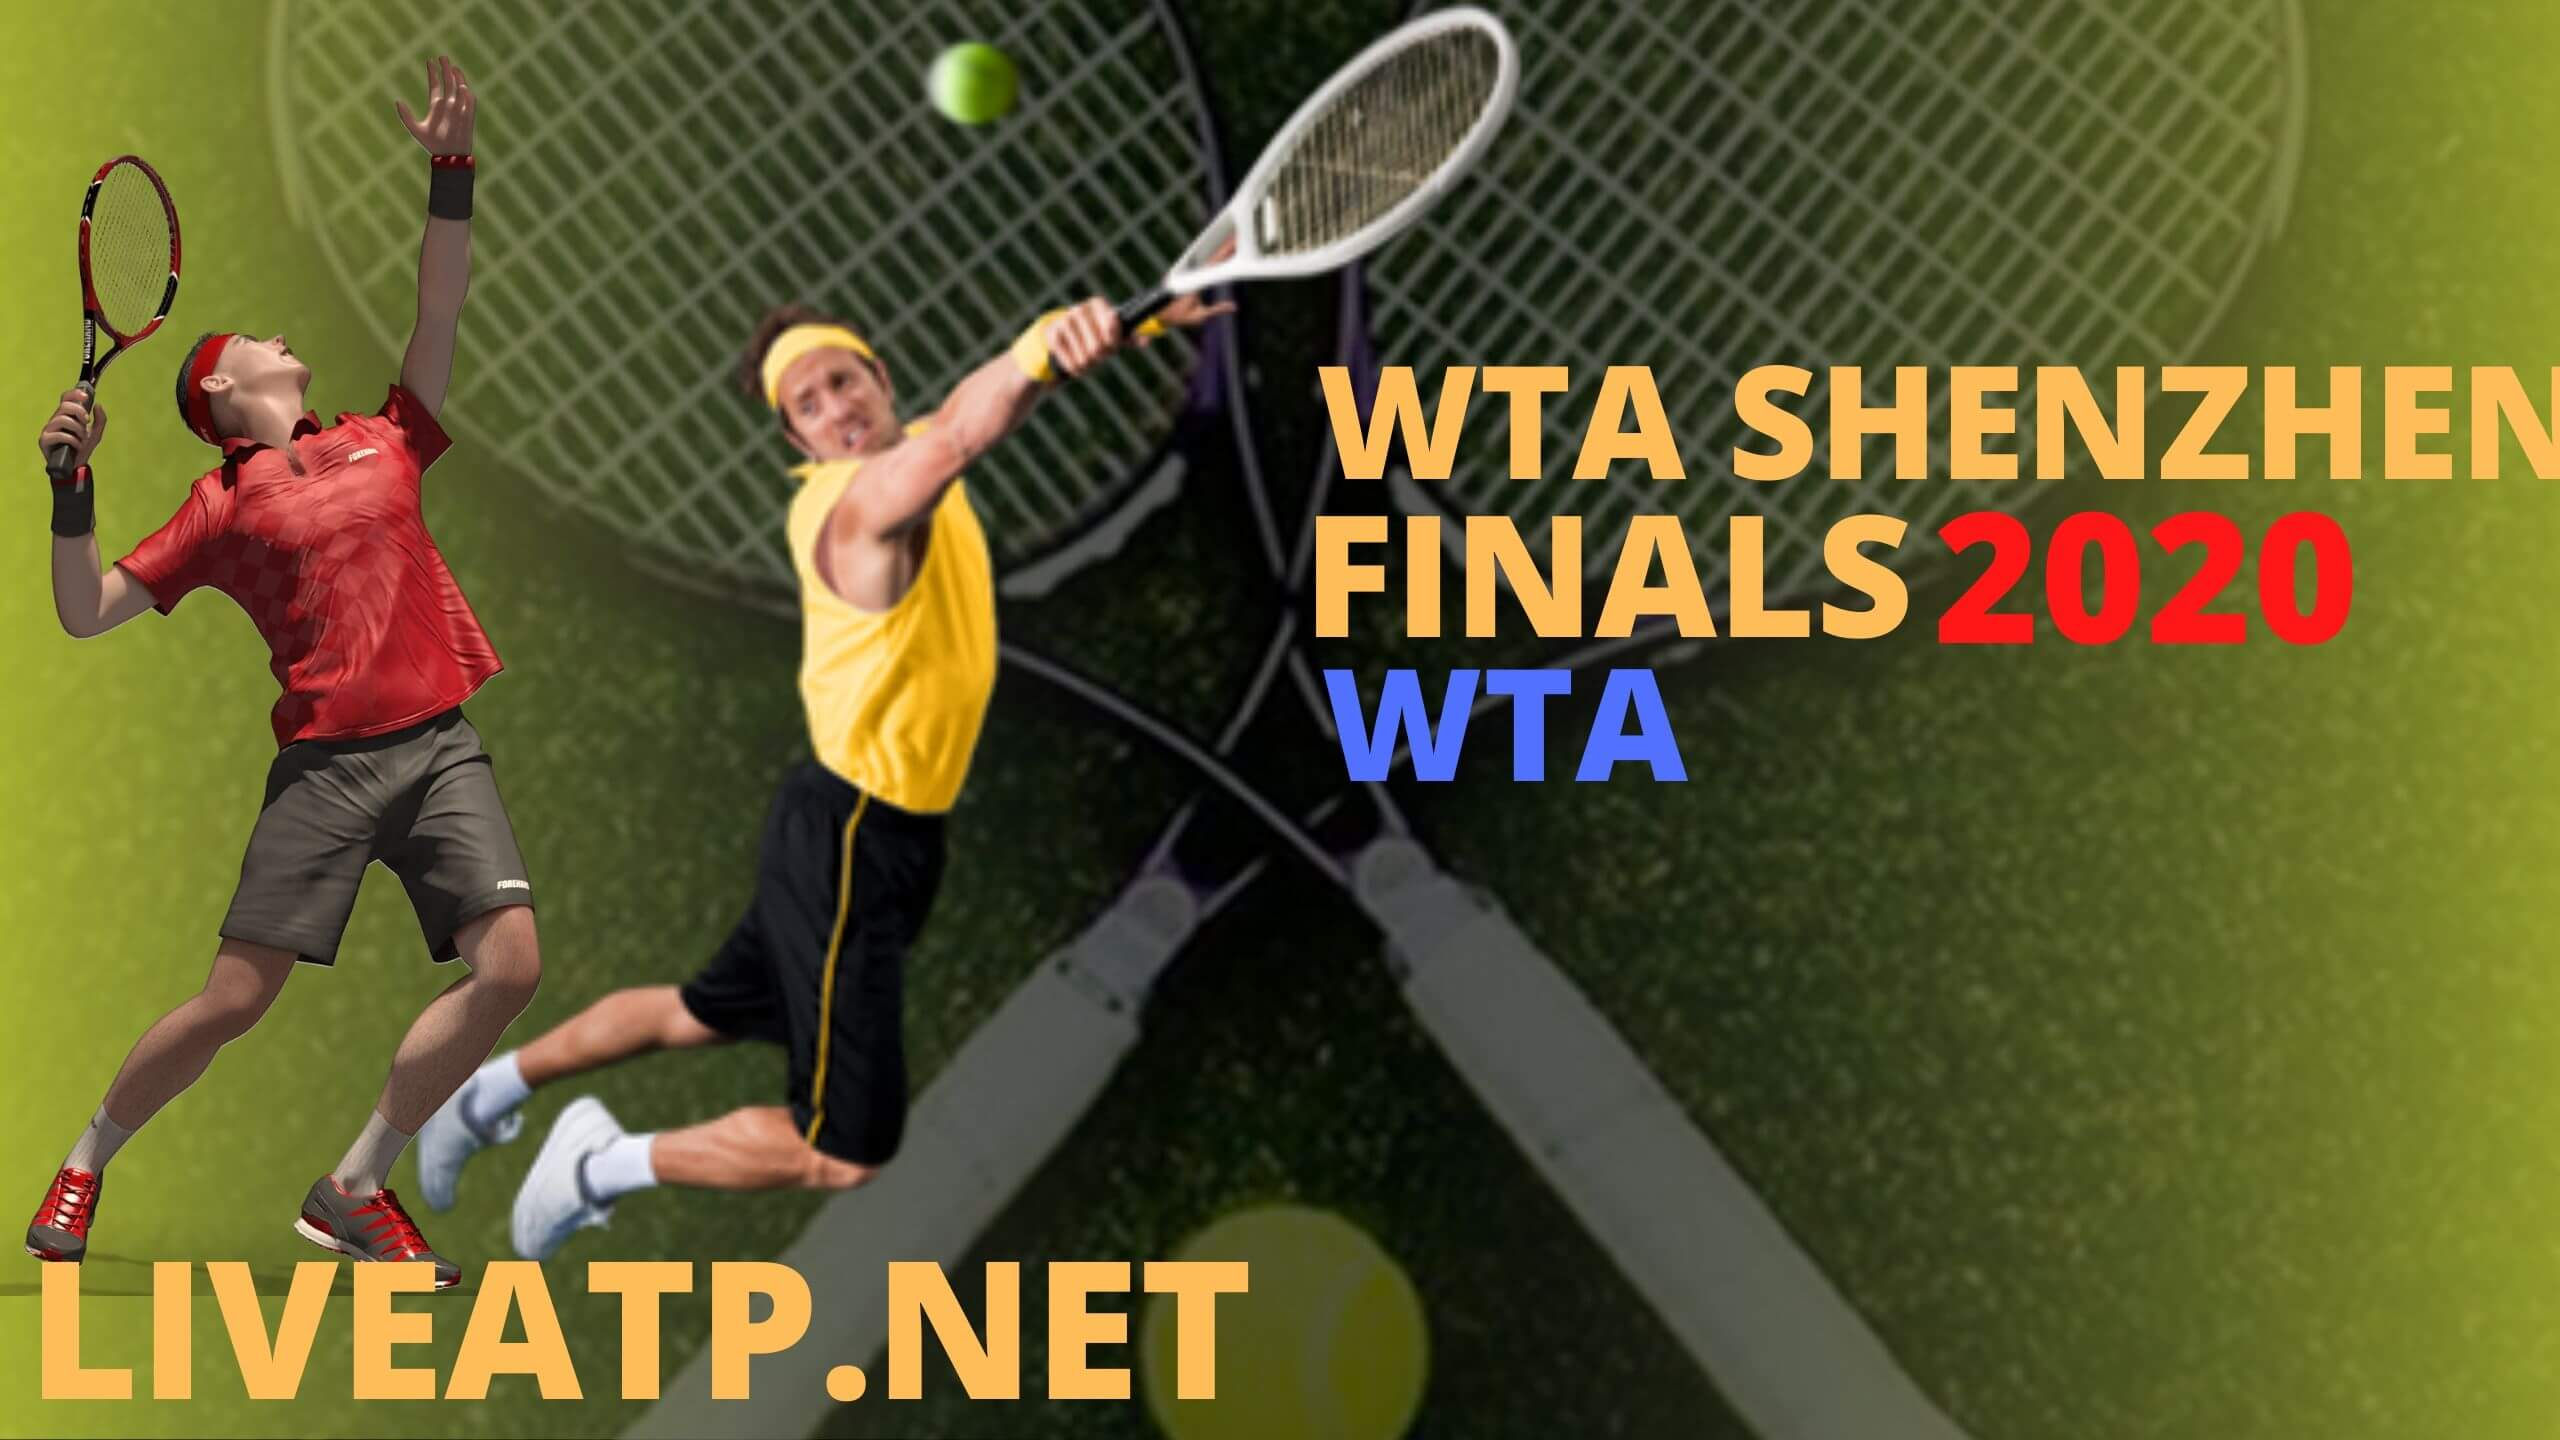 WTA Shenzhen FINALS Live Stream 2020 | Day 5